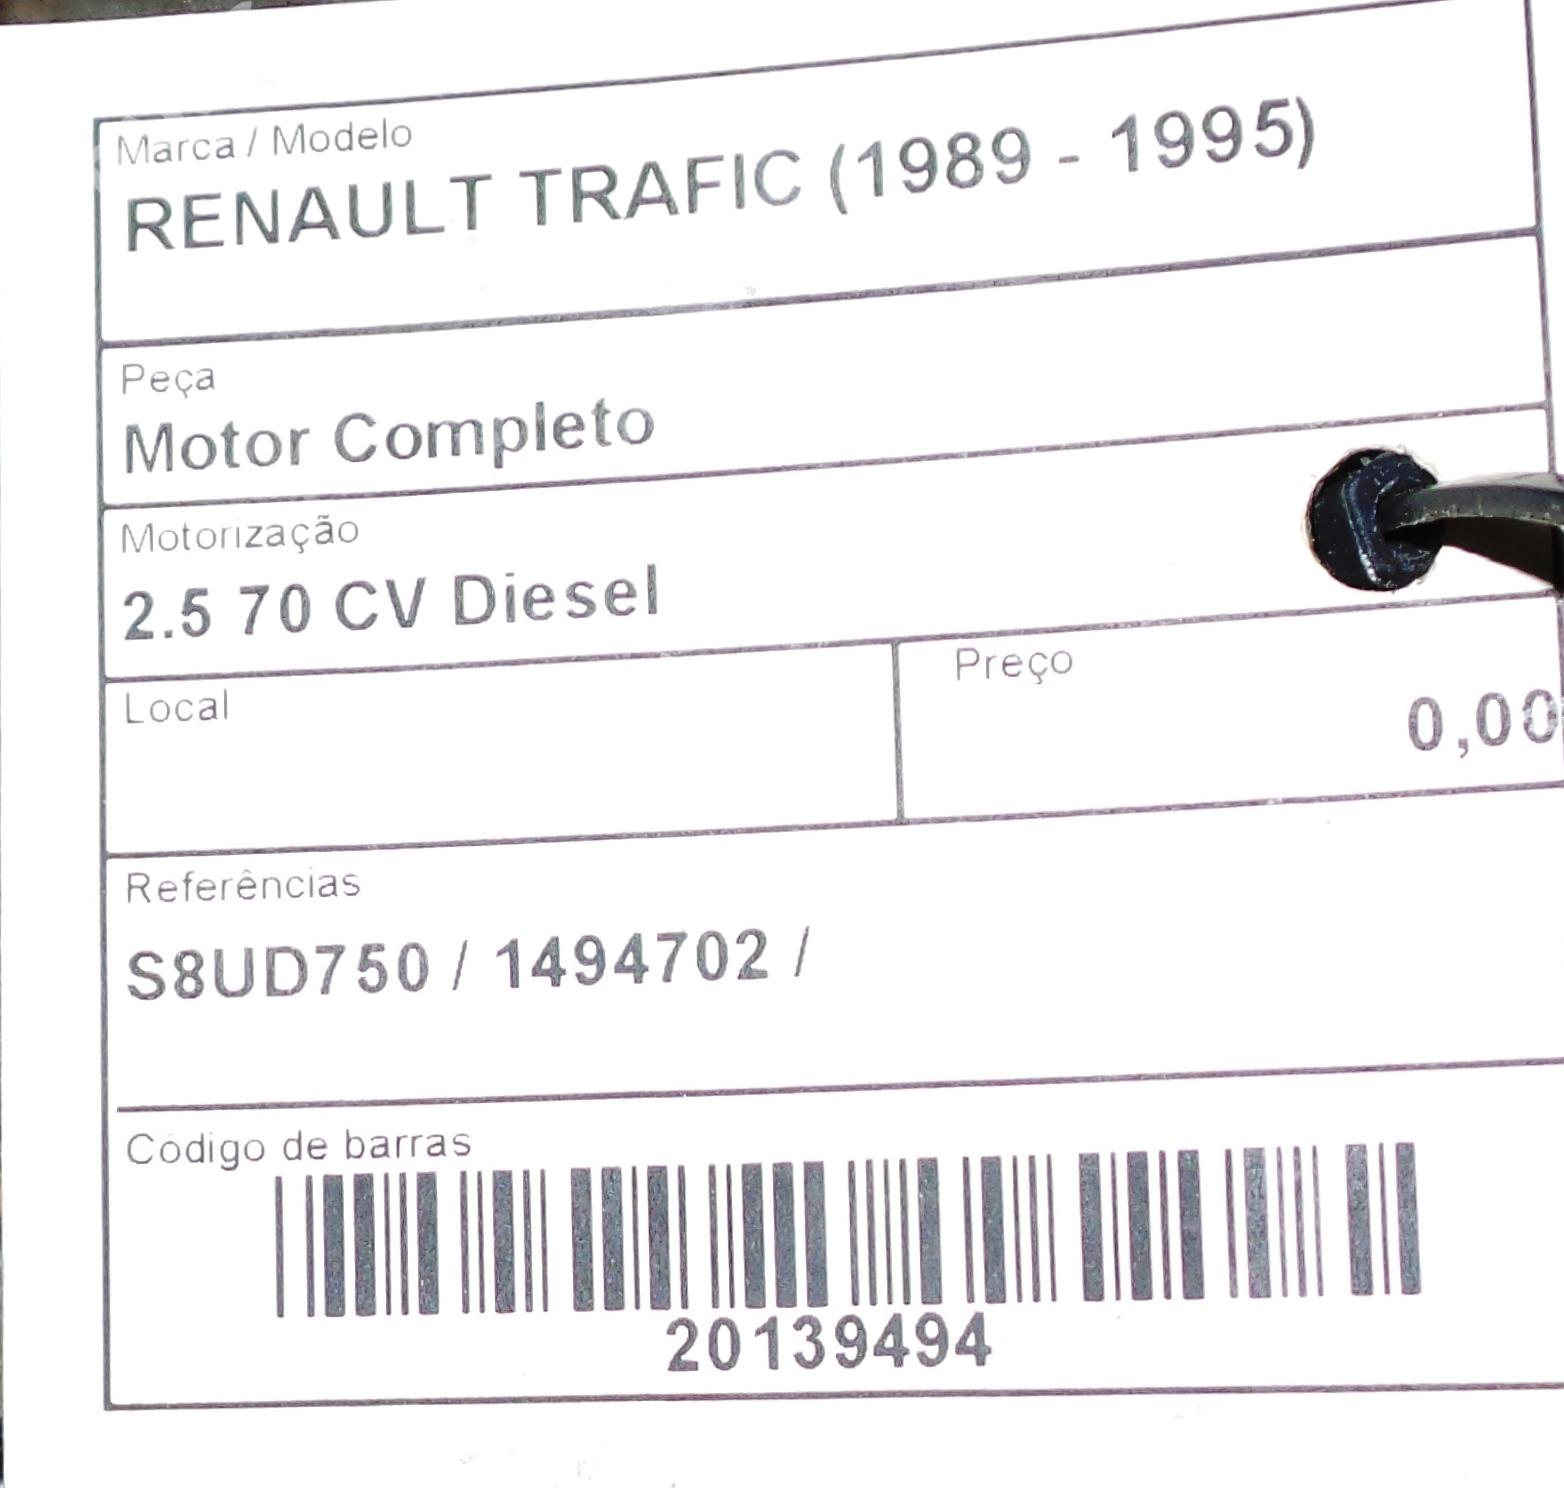 Engine Renault Trafic Box Txx 25 D 26078 Fuse On A Master Complete 1494702 D4 Doors